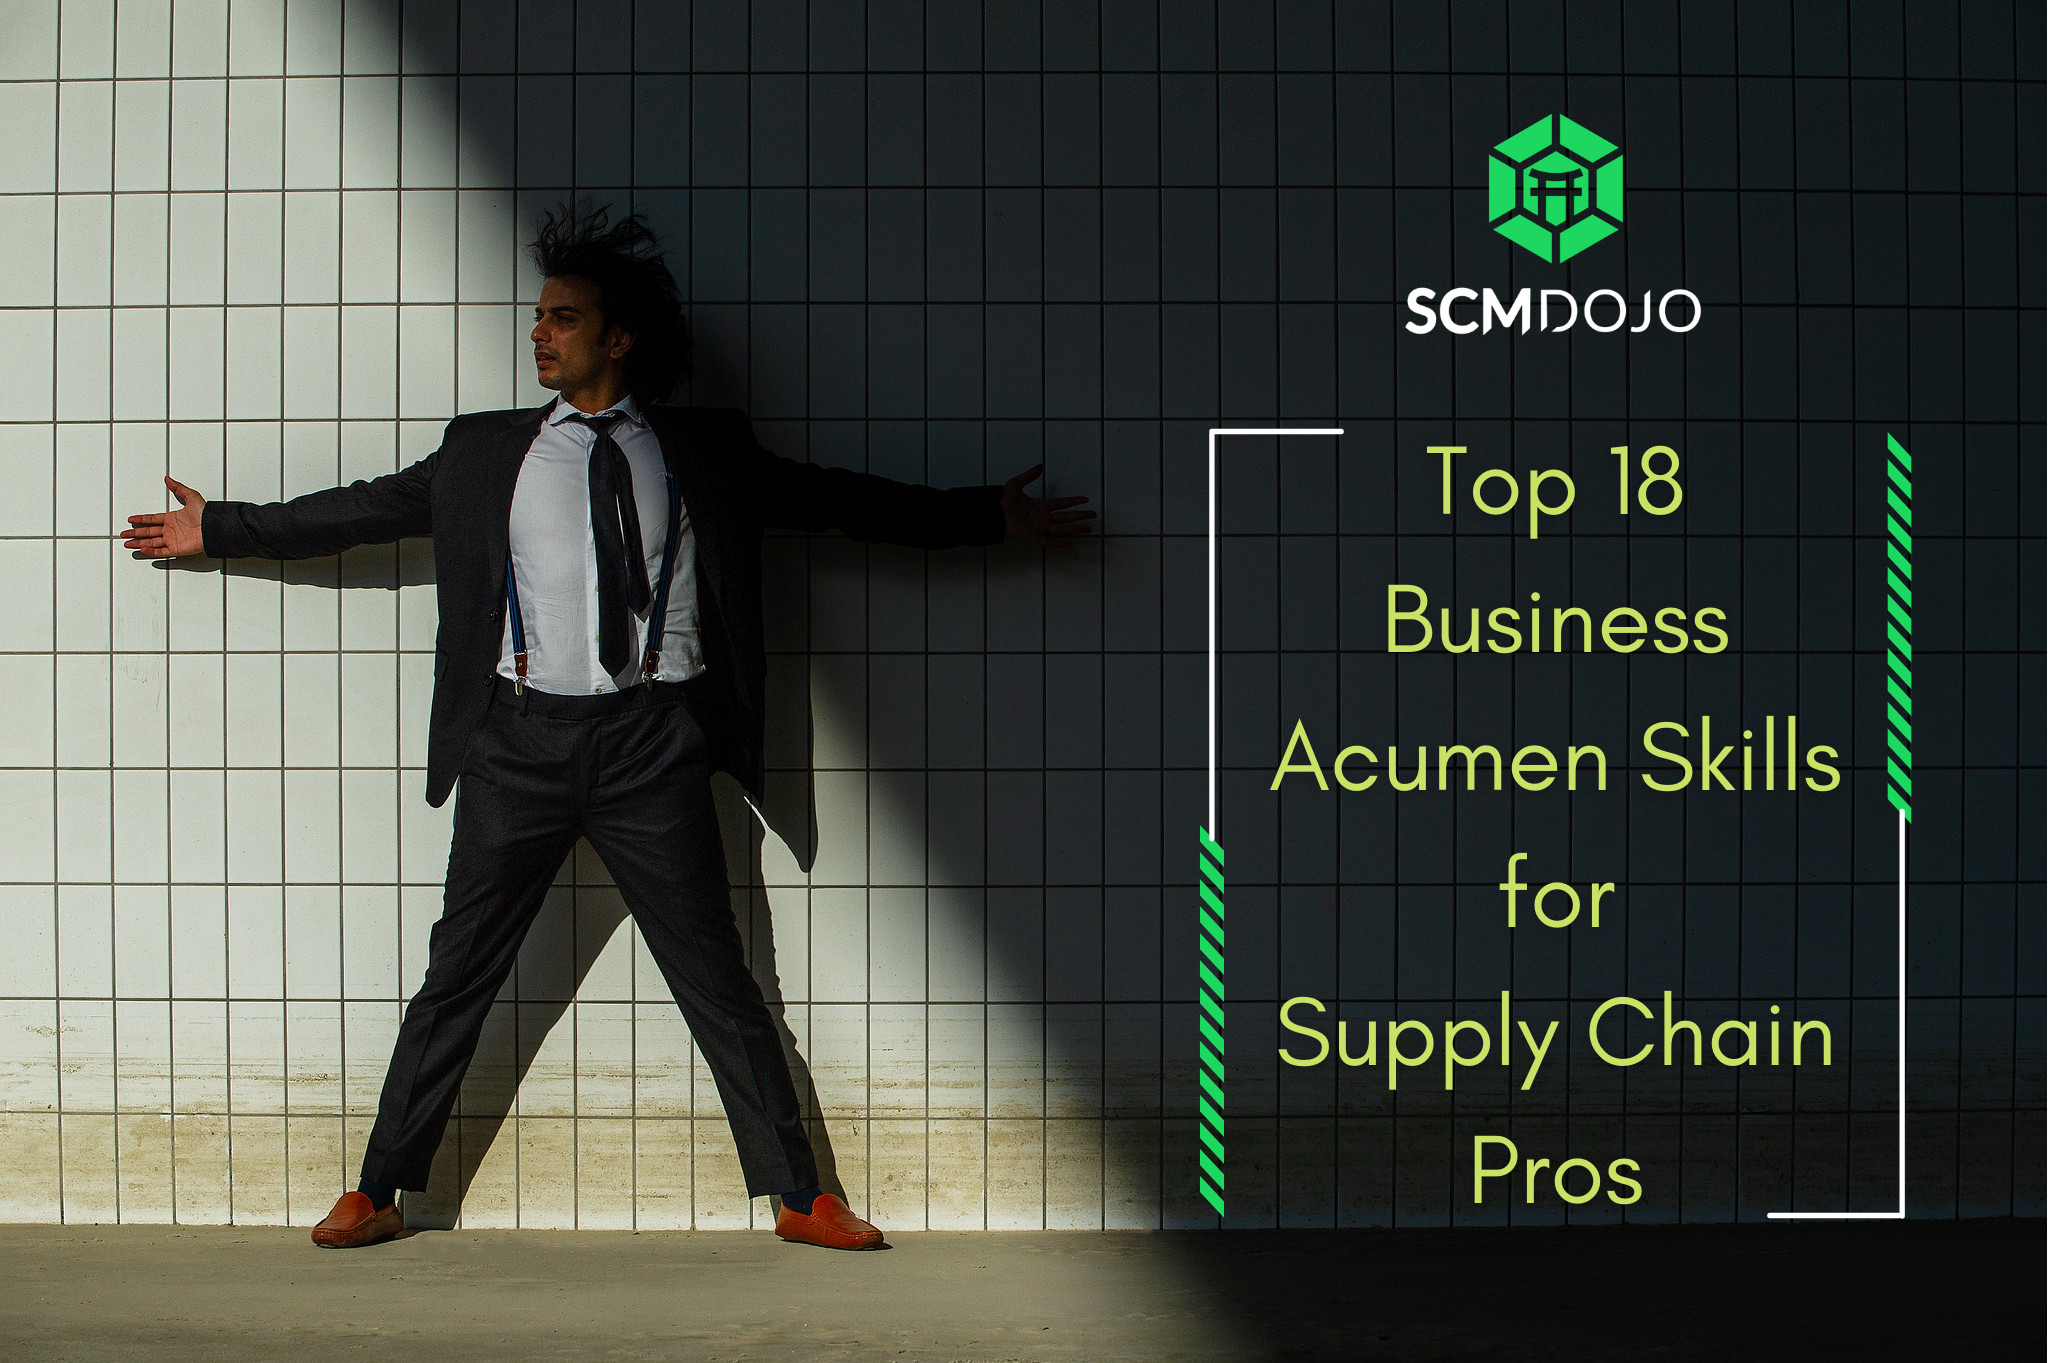 Top 18 Business Acumen Skills You Should Master